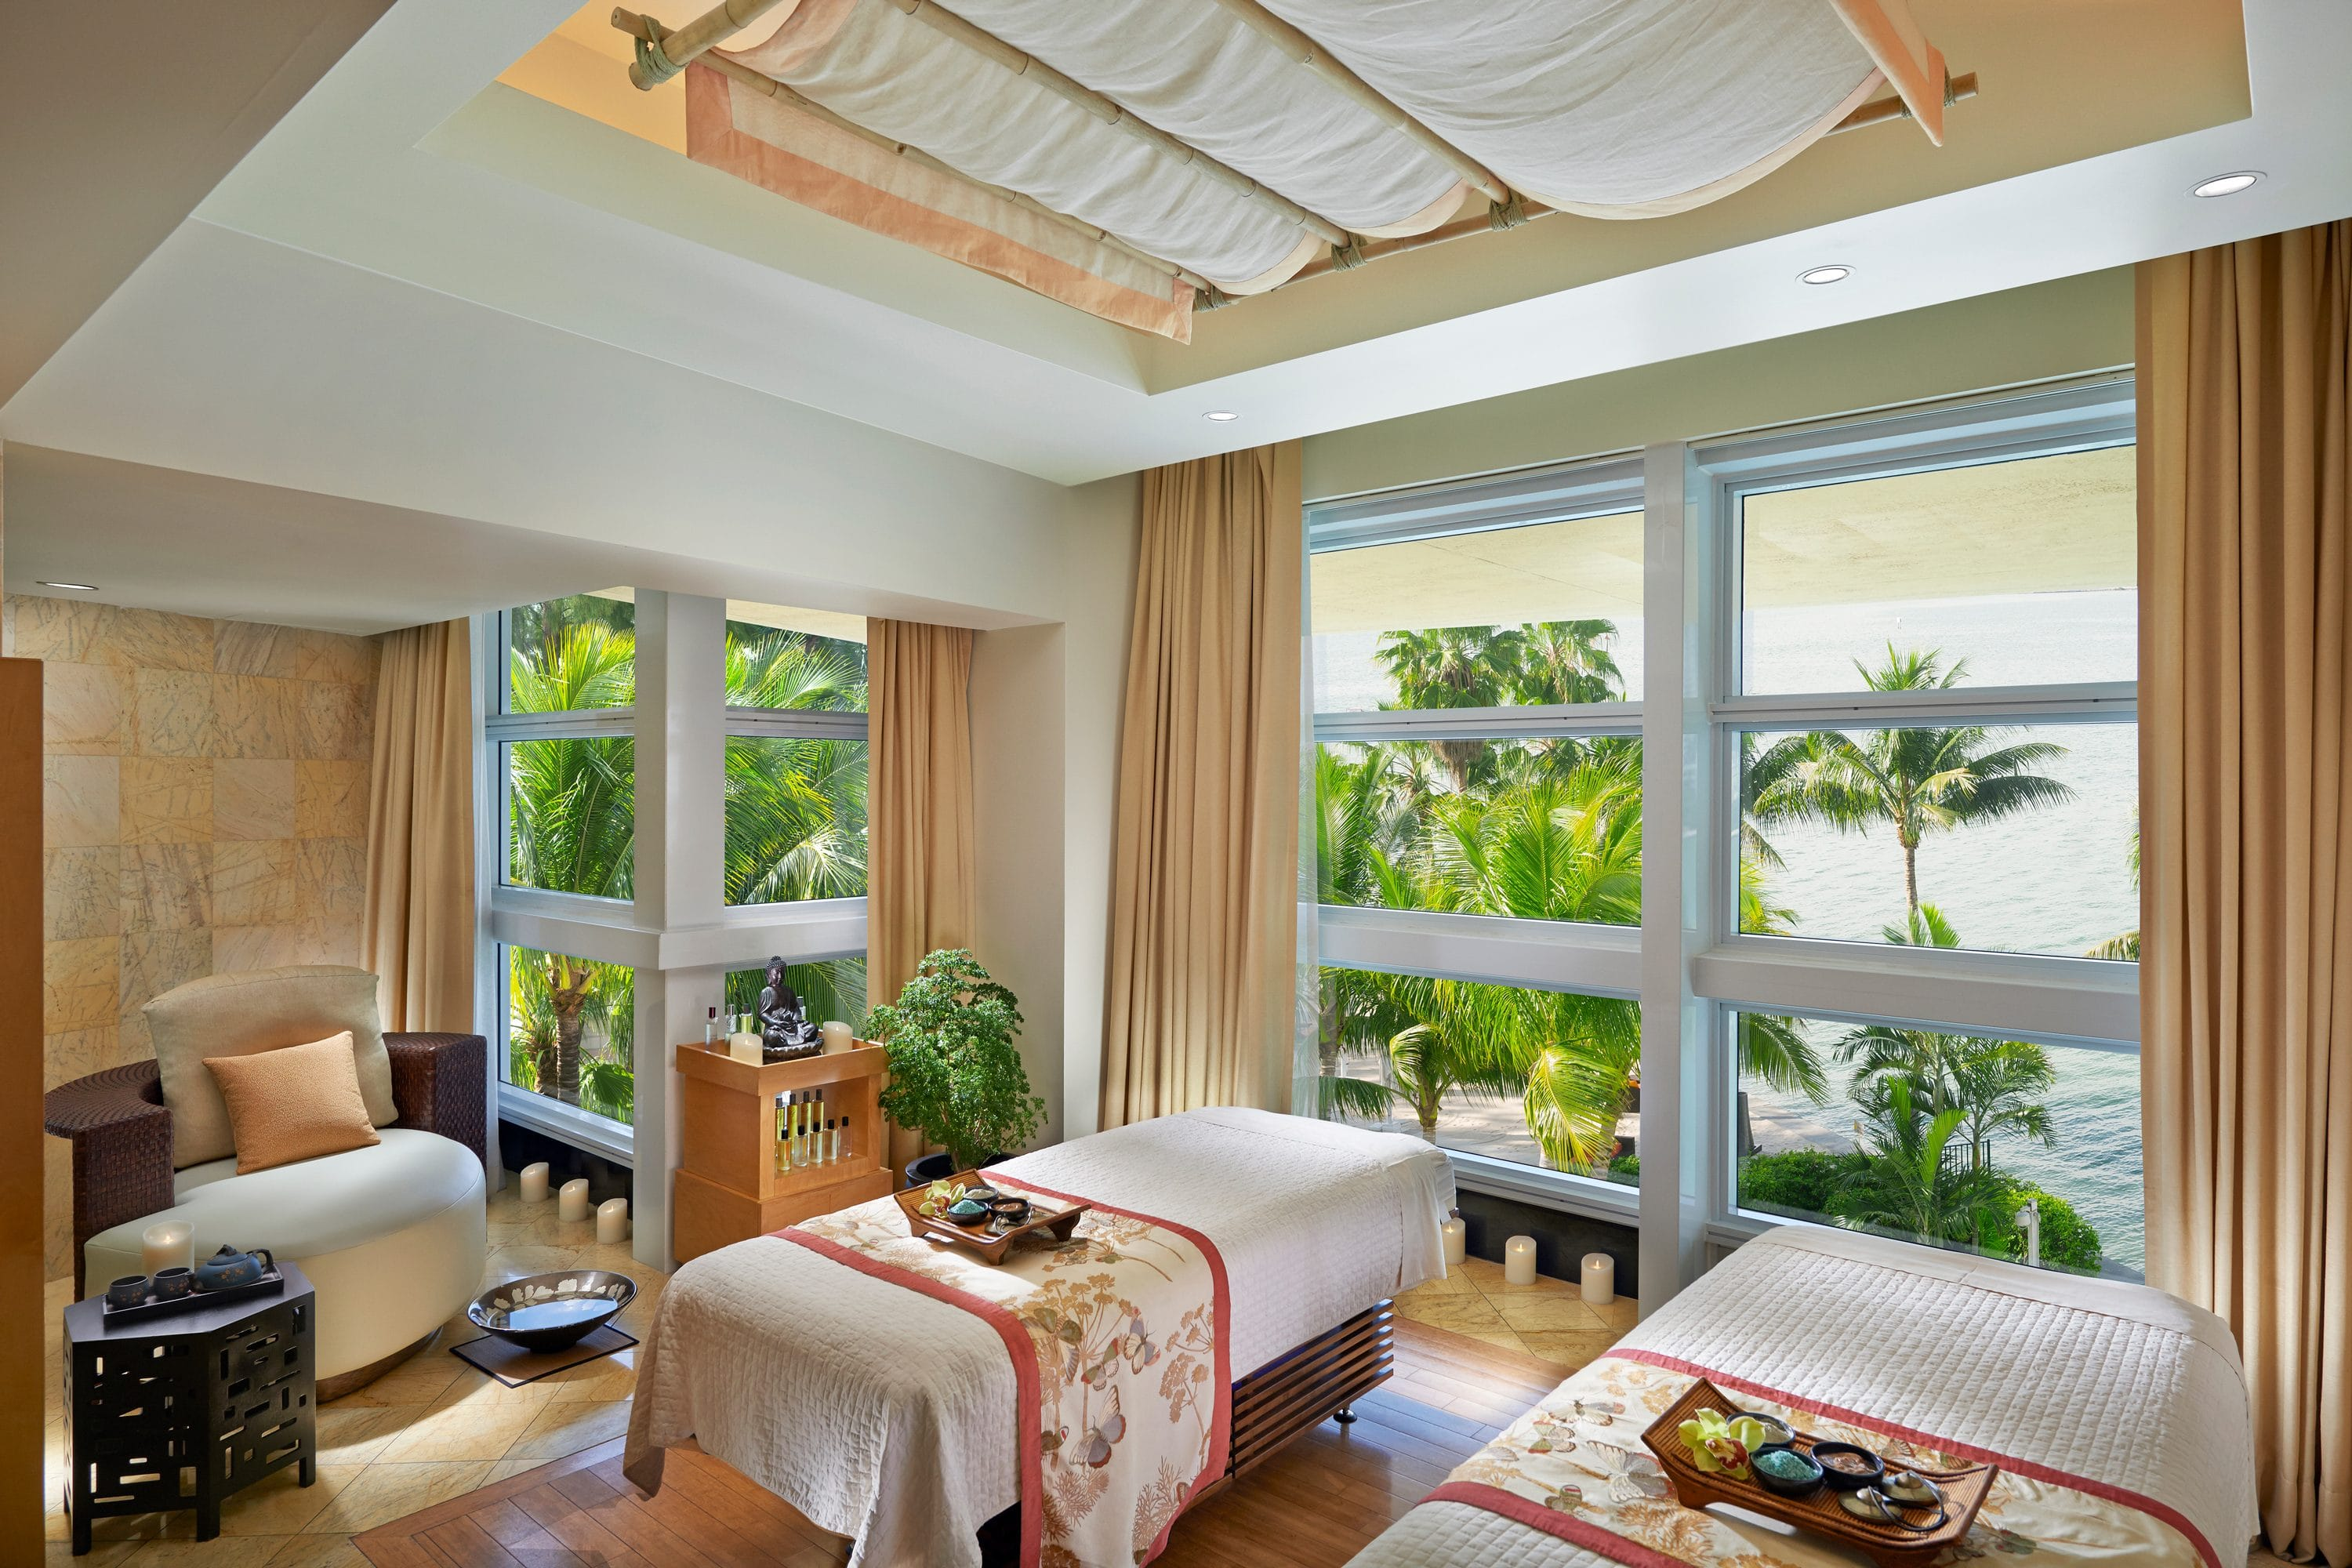 A luxury spa couples suite overlooking palm trees and water